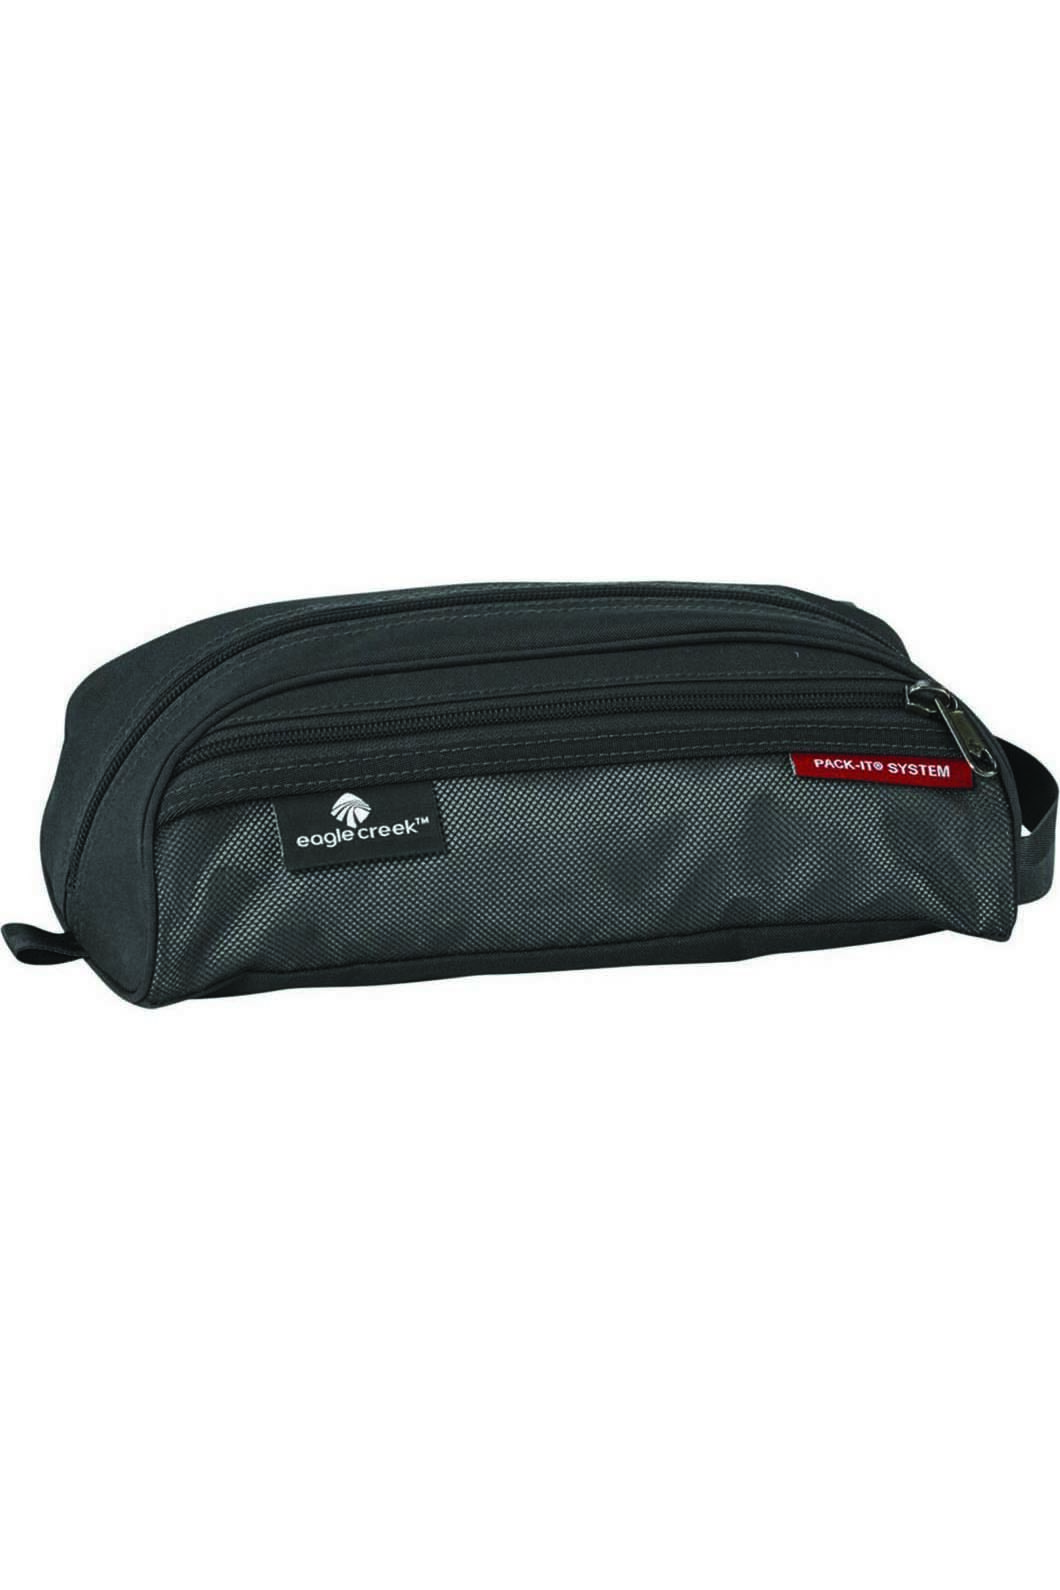 Eagle Creek Pack-It Quick Trip, Black, hi-res